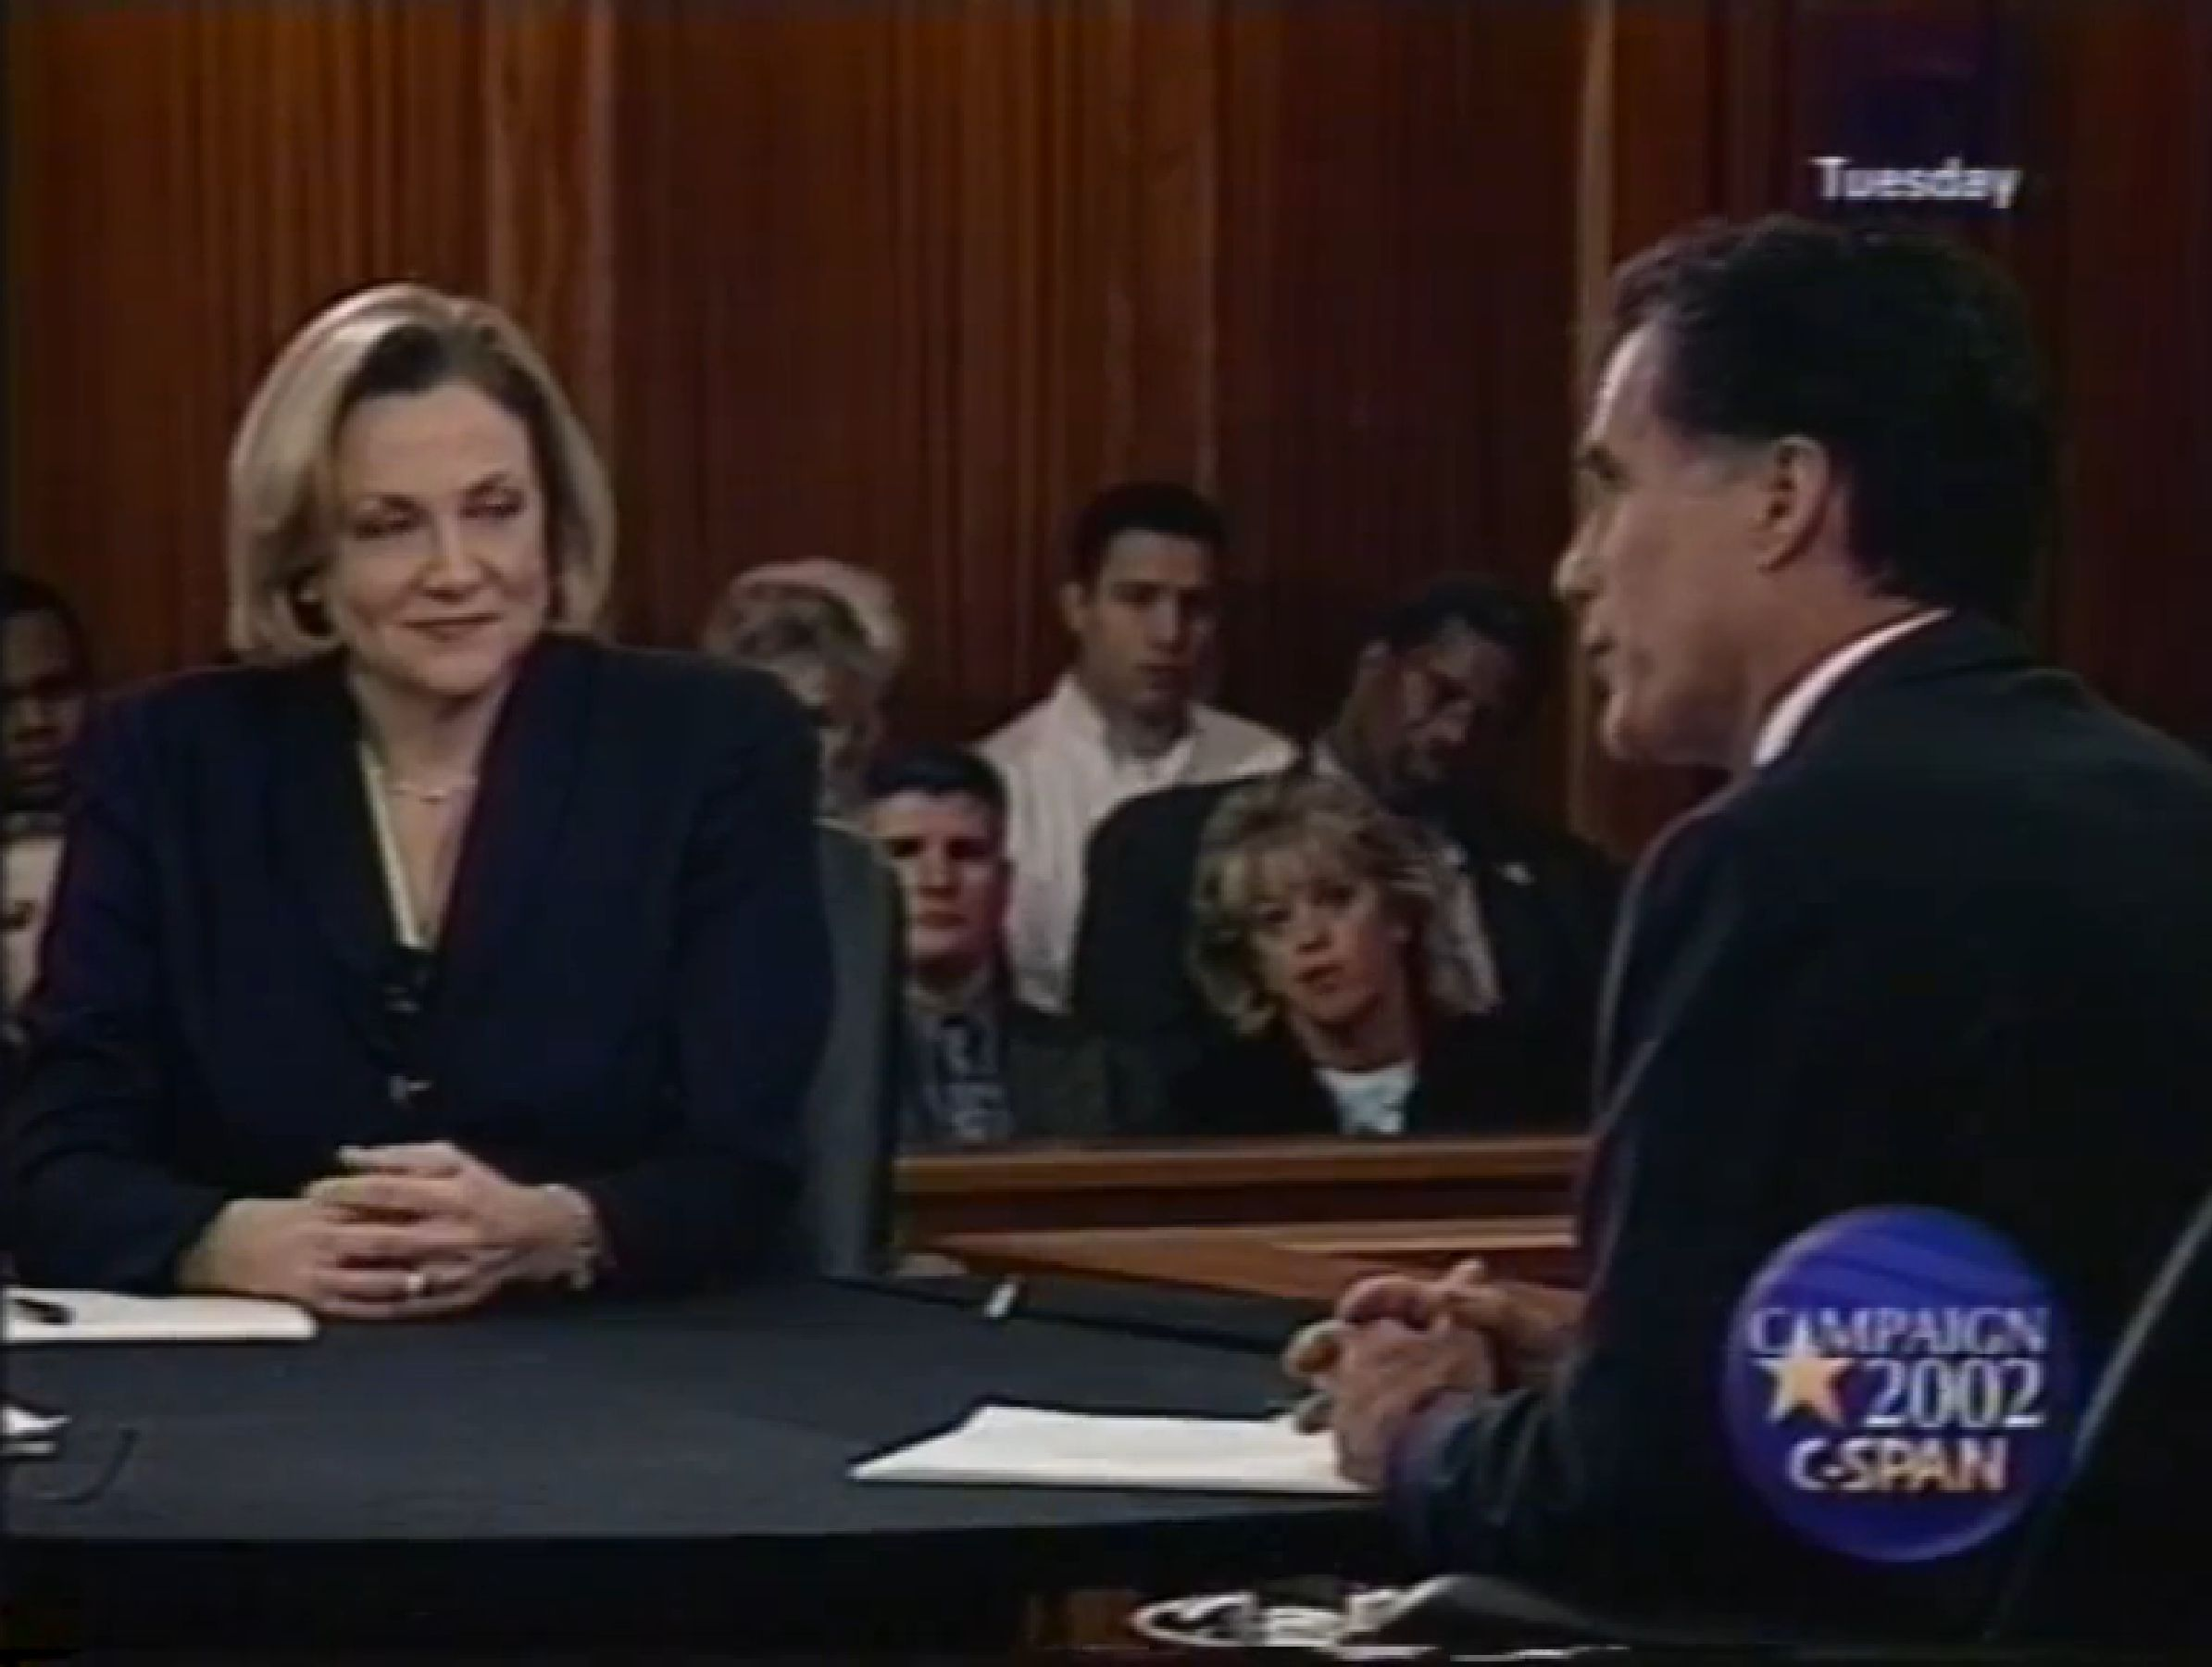 Shannon OBrien debates Mitt Romney during the 2002 Massachusetts gubernatorial campaign